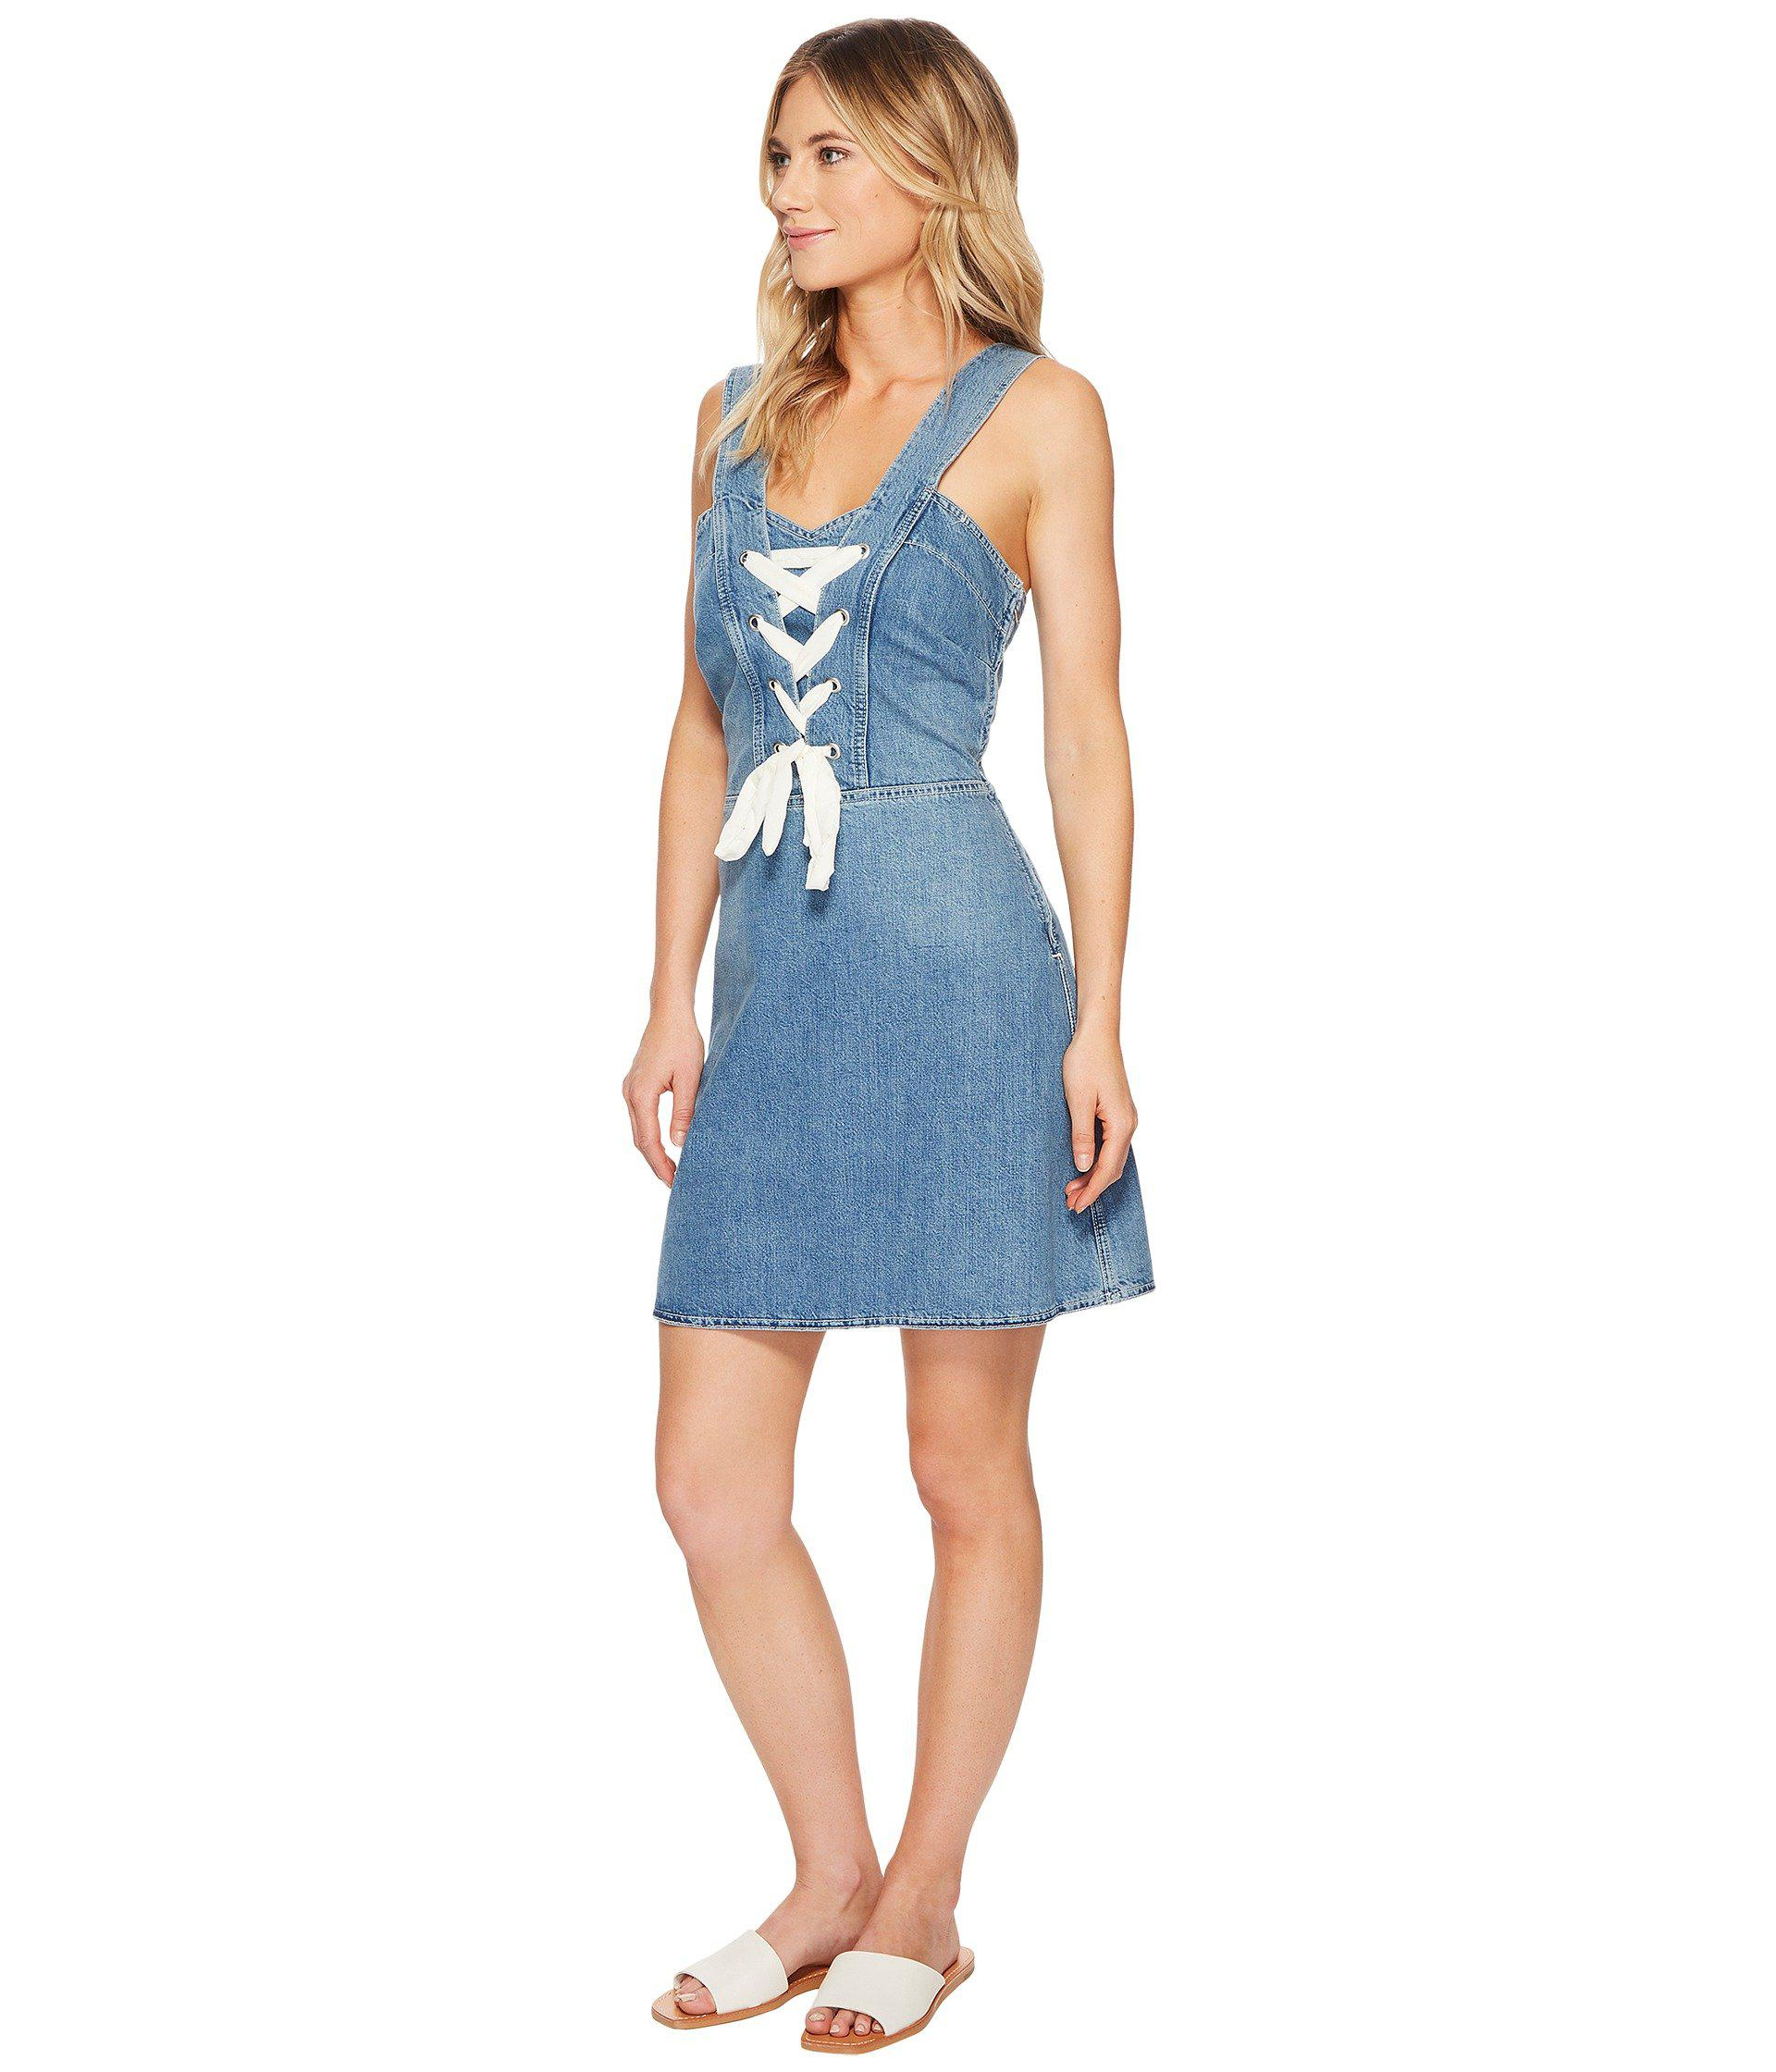 bf2d259fd71 Lyst - PAIGE Tula Dress in Blue - Save 60%